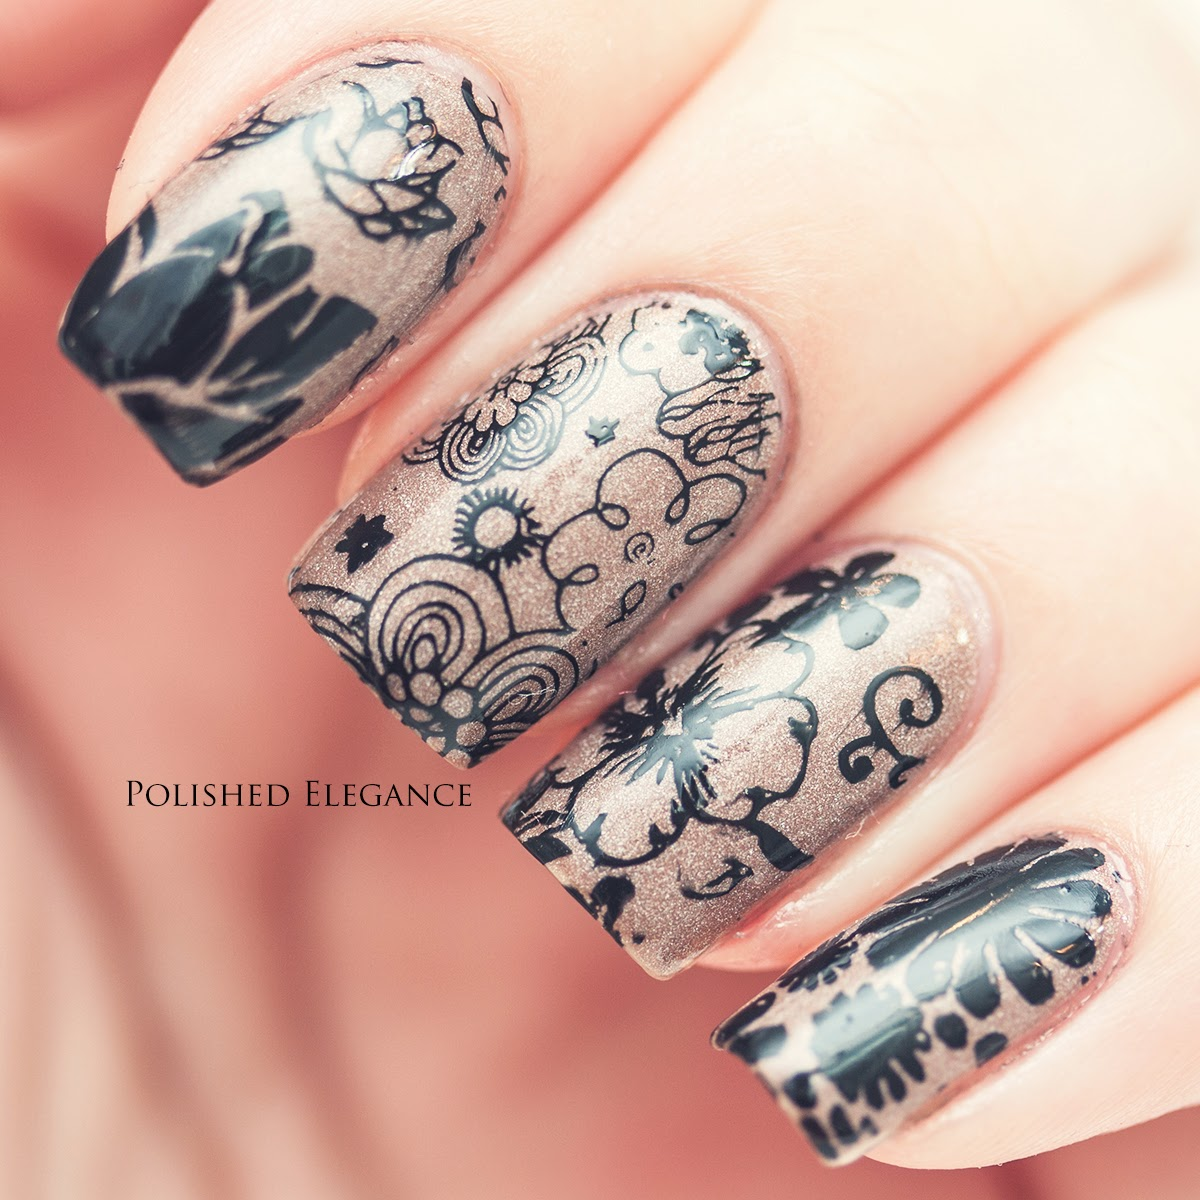 Emoji Nail Art And Some New Kit From Moyou: Polished Elegance: MoYou Stamping